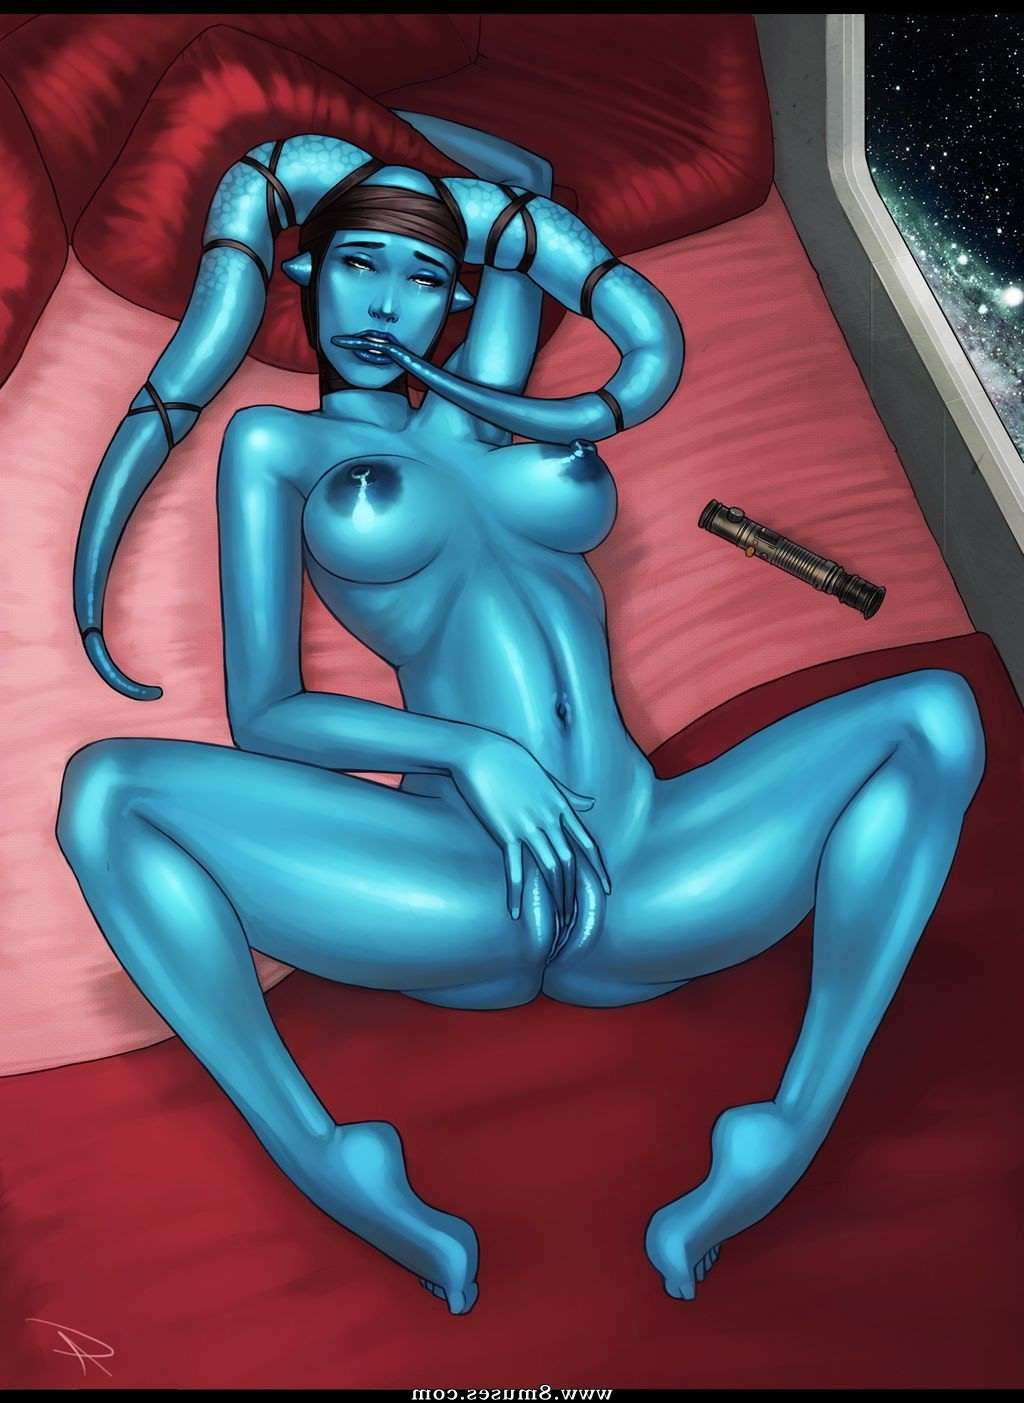 Incase-Comics/Artwork Artwork__8muses_-_Sex_and_Porn_Comics_65.jpg